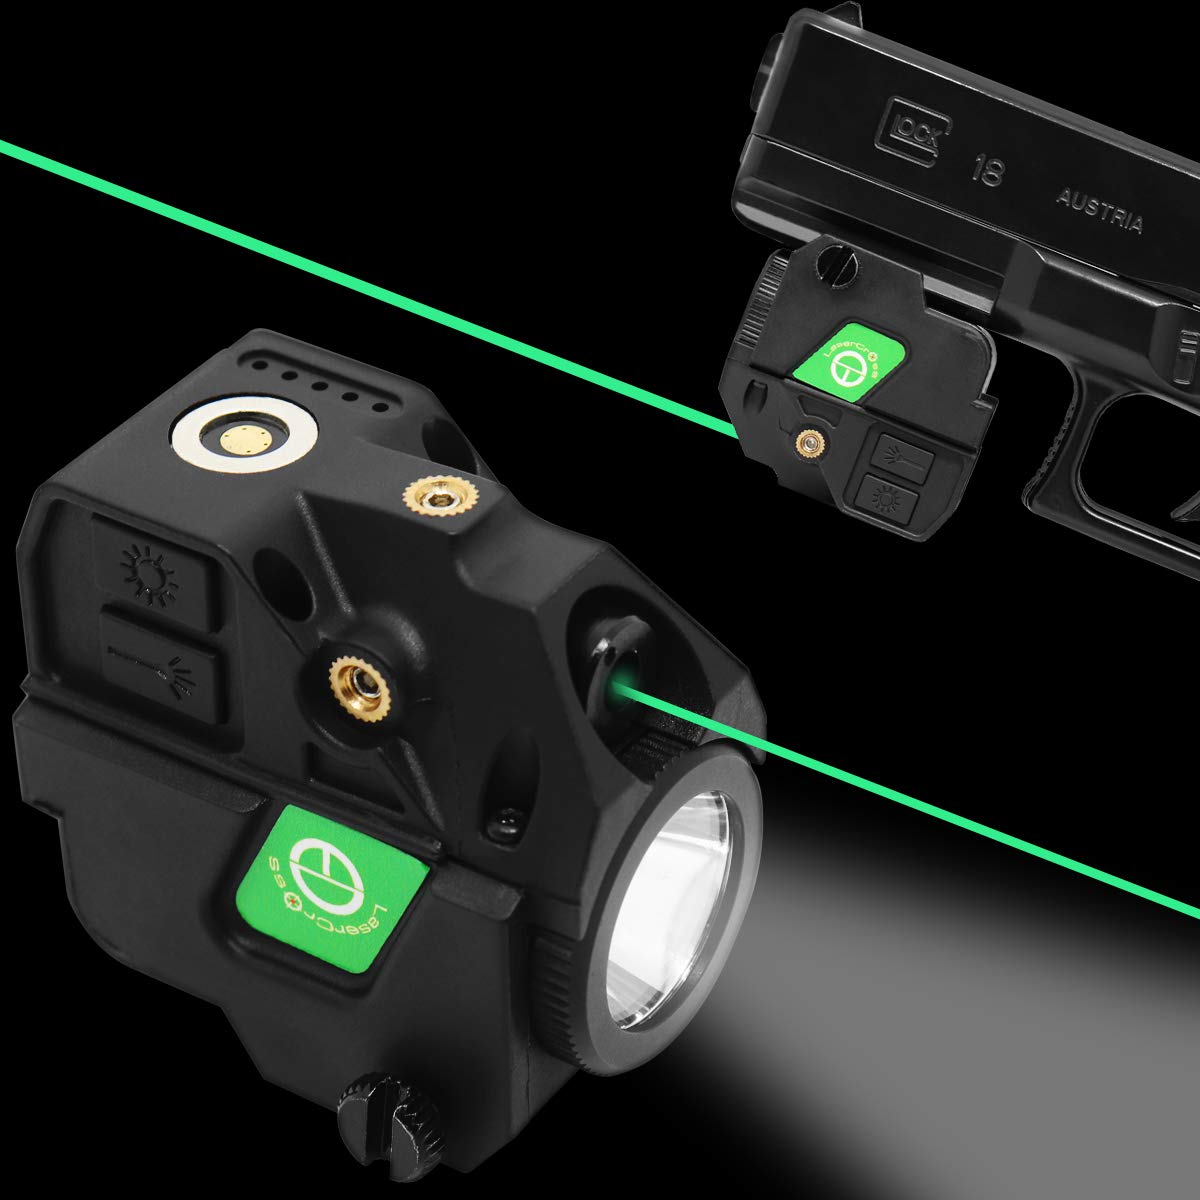 Lasercross New Version CL103 Laser Sight- Megnetic Touch Charging Green Dot Sight,LED Flashlight Combo Build-in Lithium Battery Sights with 20mm Rail Picatinny On/Off Switch for Air Pistol,Airgun by Lasercross